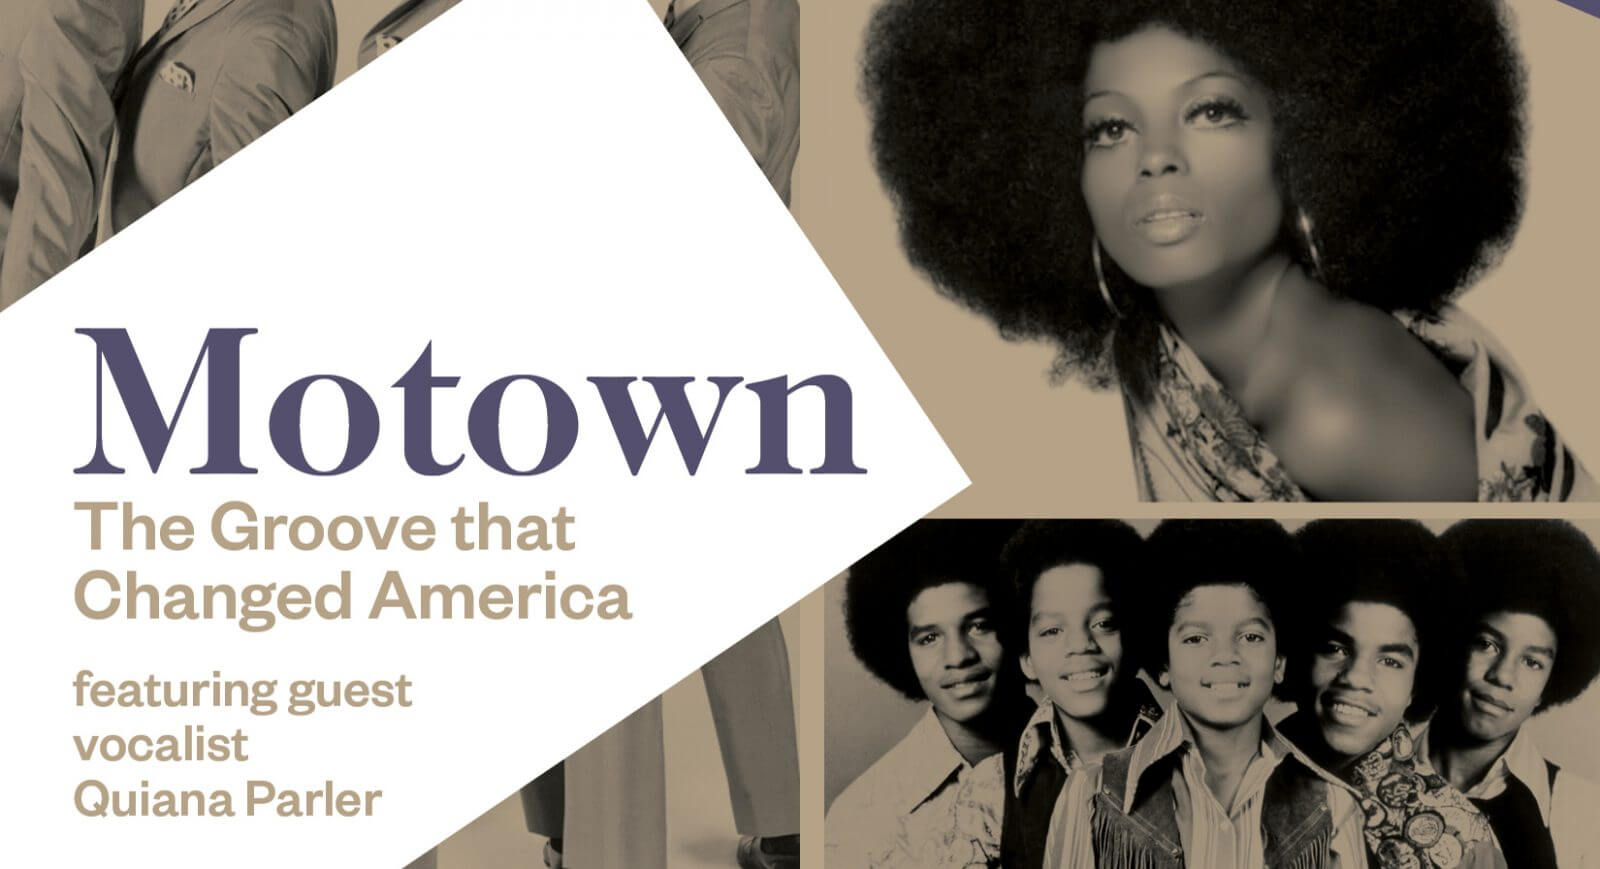 MOTOWN The Groove that Changed America